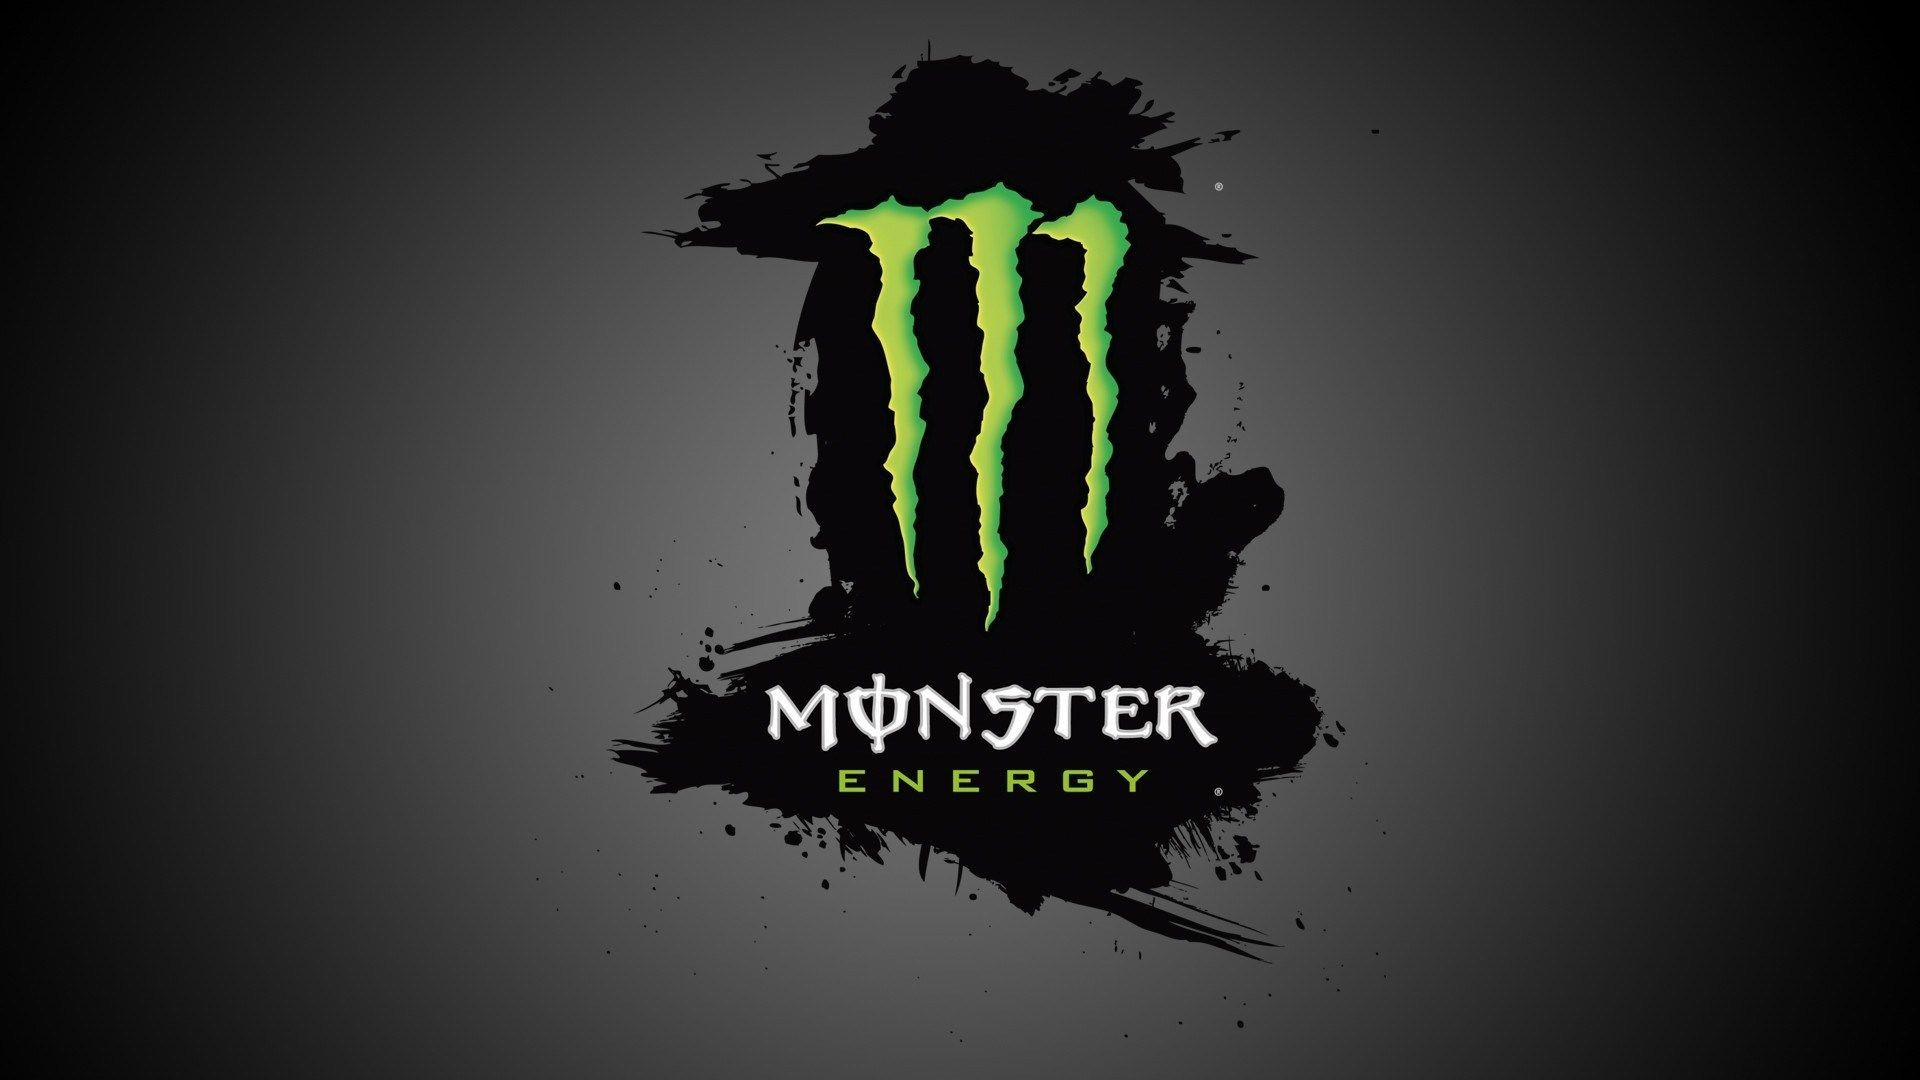 1920x1080 Wallpapers For Rockstar Energy Logo Wallpaper Source · Rockstar Energy  Wallpaper For Iphone Labzada Wallpaper